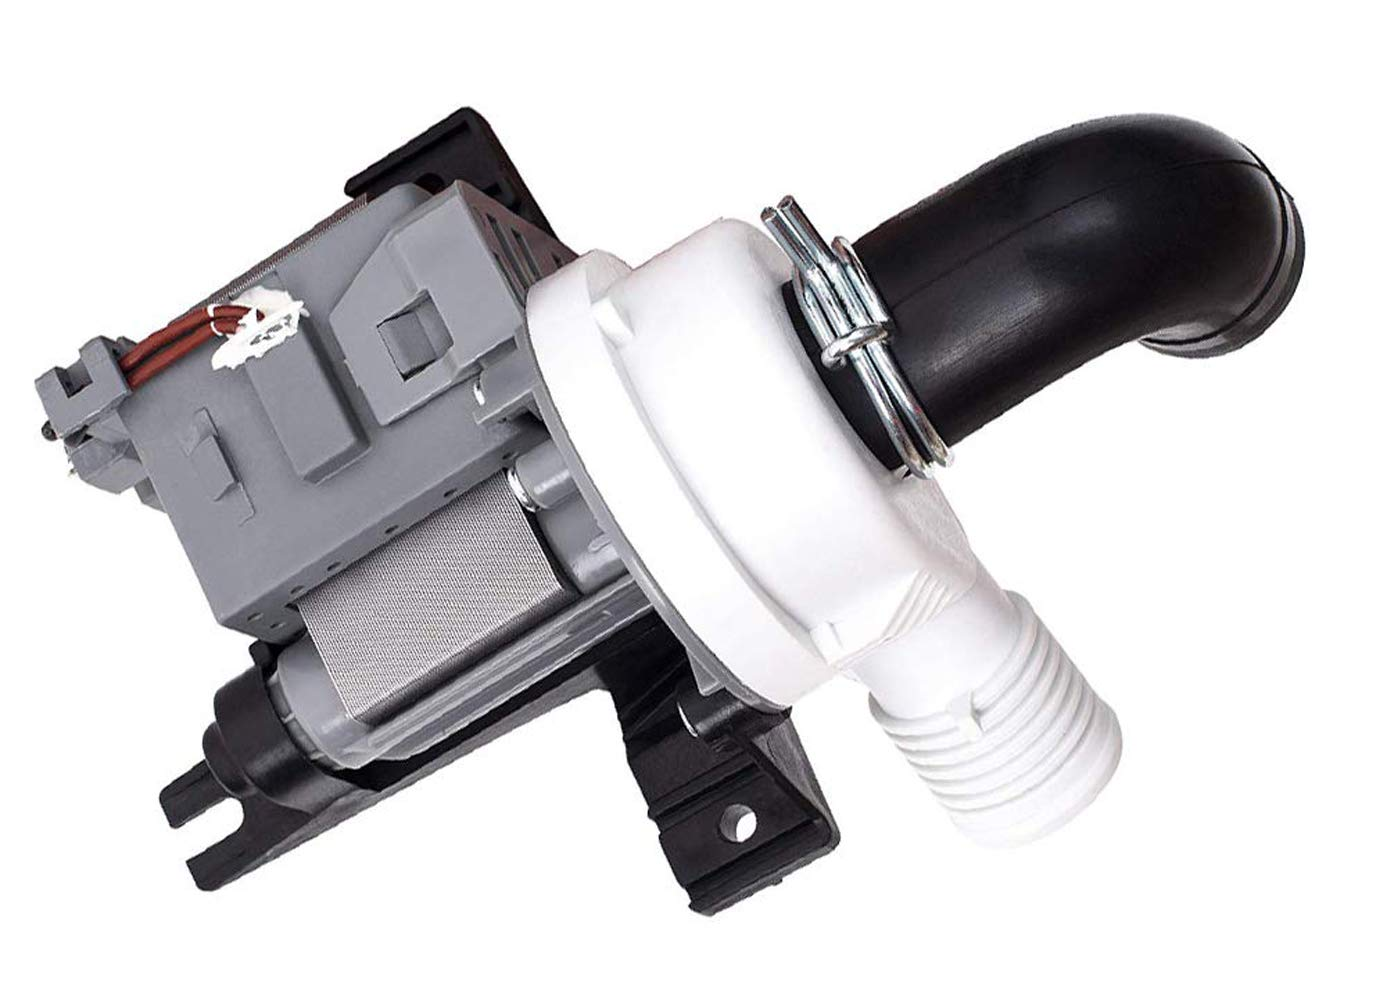 W10049390 2392433 AP5650269 8542672 W10536347 Washer Drain Pump by Seentech Exact for Whirlpool Kenmore Maytag Washer Replaces W10217134 PS5136124 W10155921